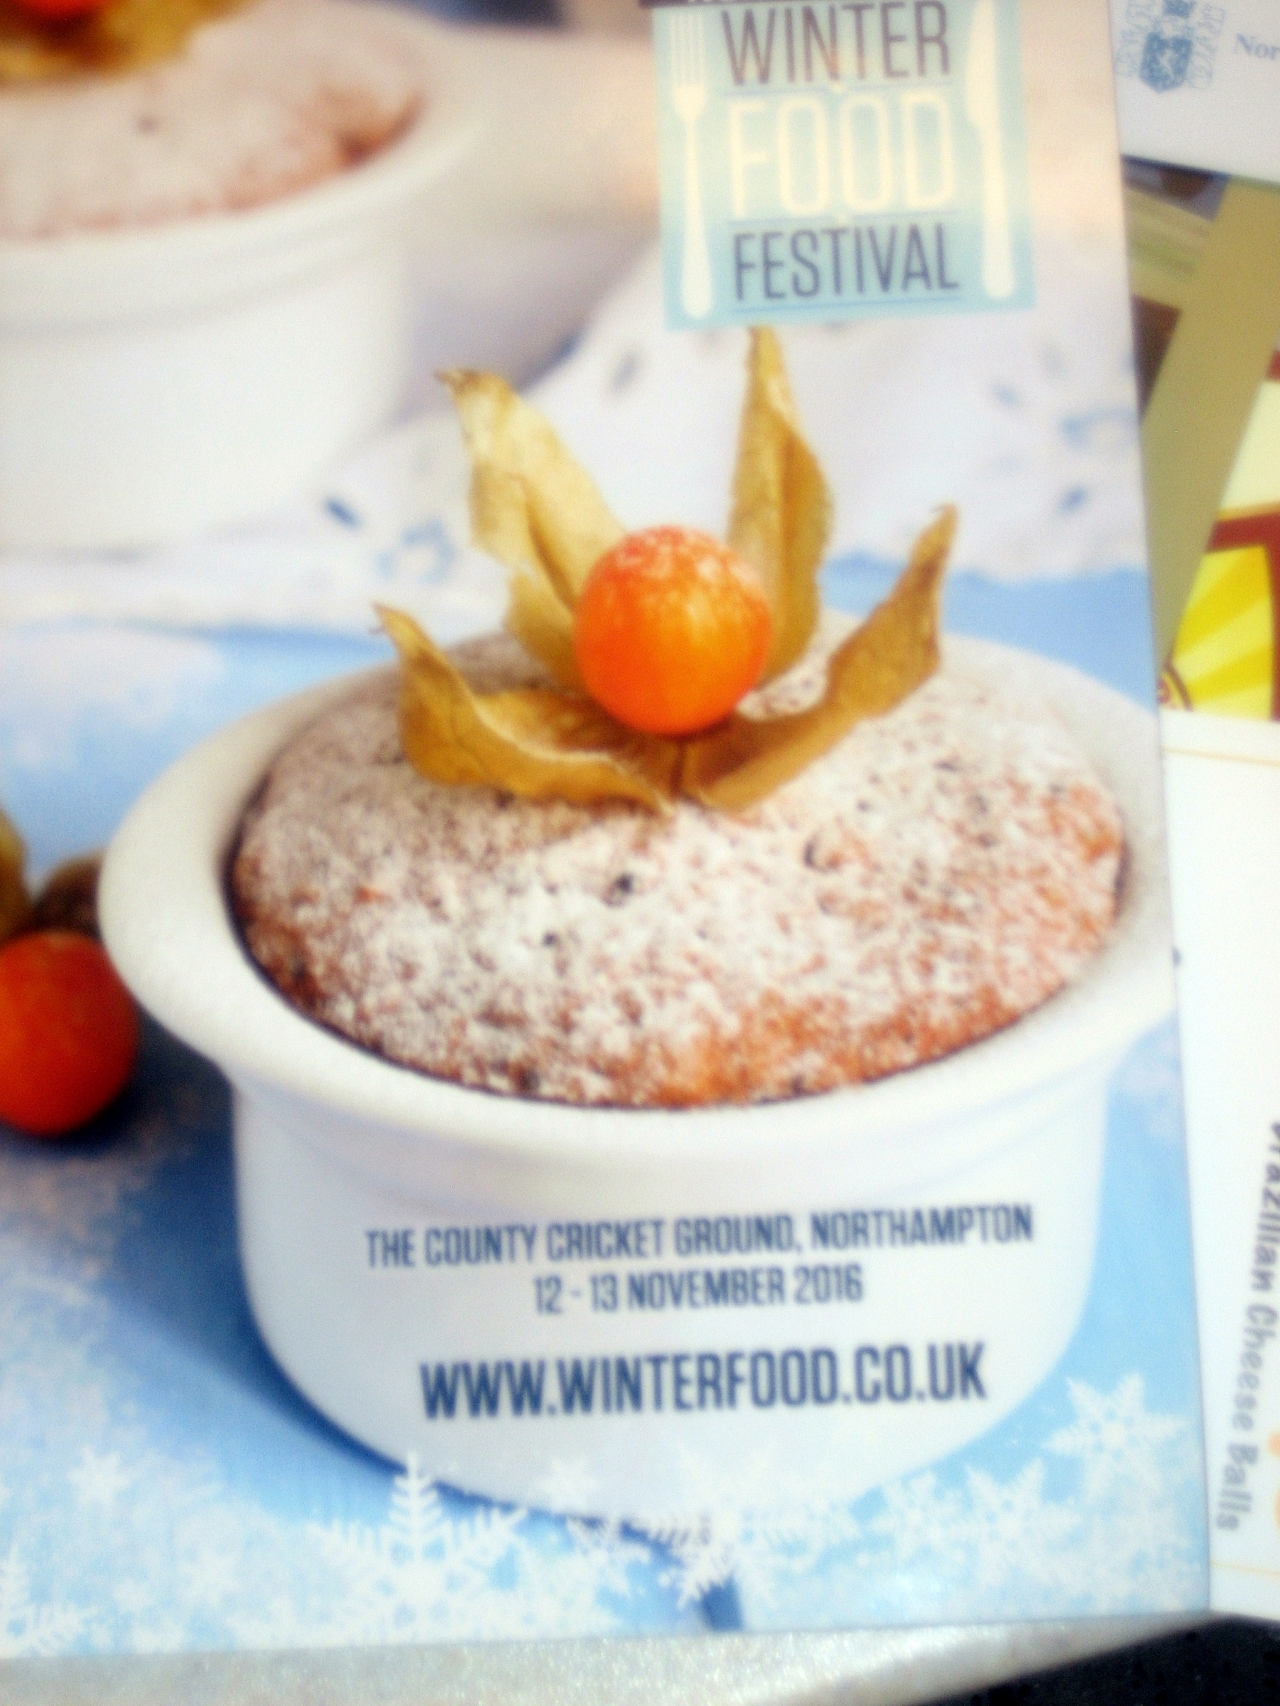 Food 2016 – Winter Food Festival, Northampton